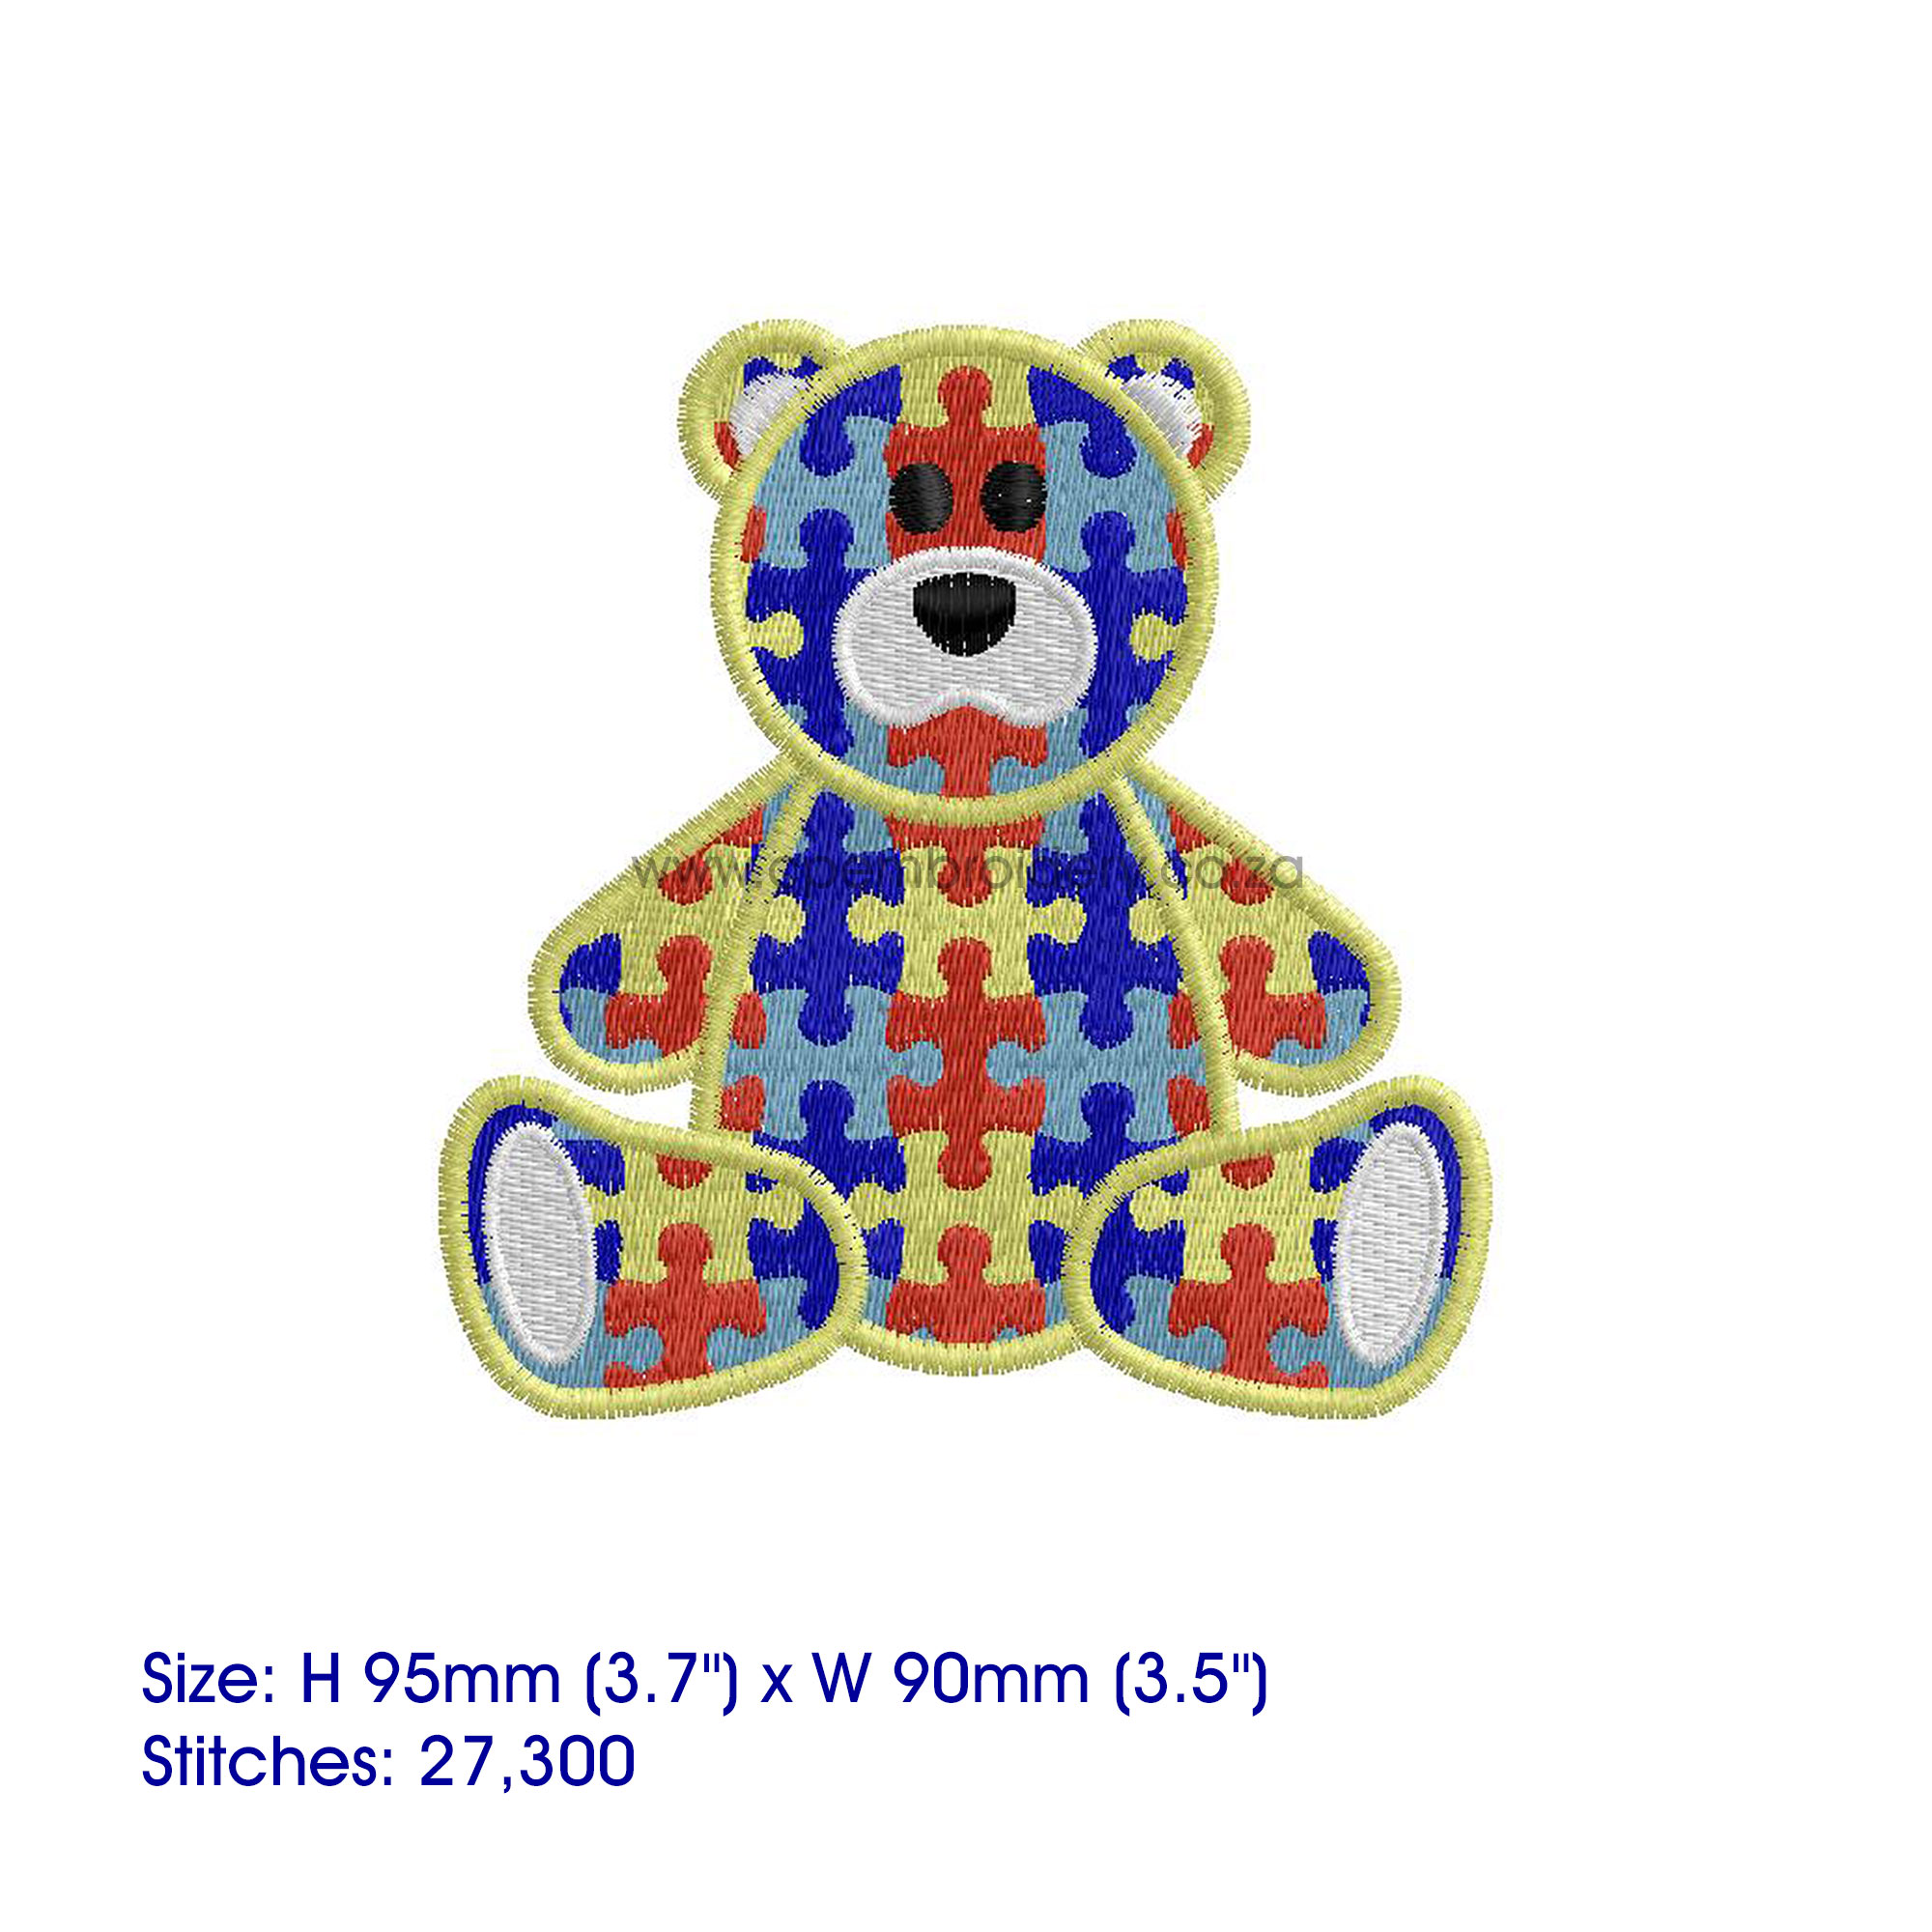 sit sitting colored colorful puzzle detail puzzled teddy bear embroidery design support autism awareness medium